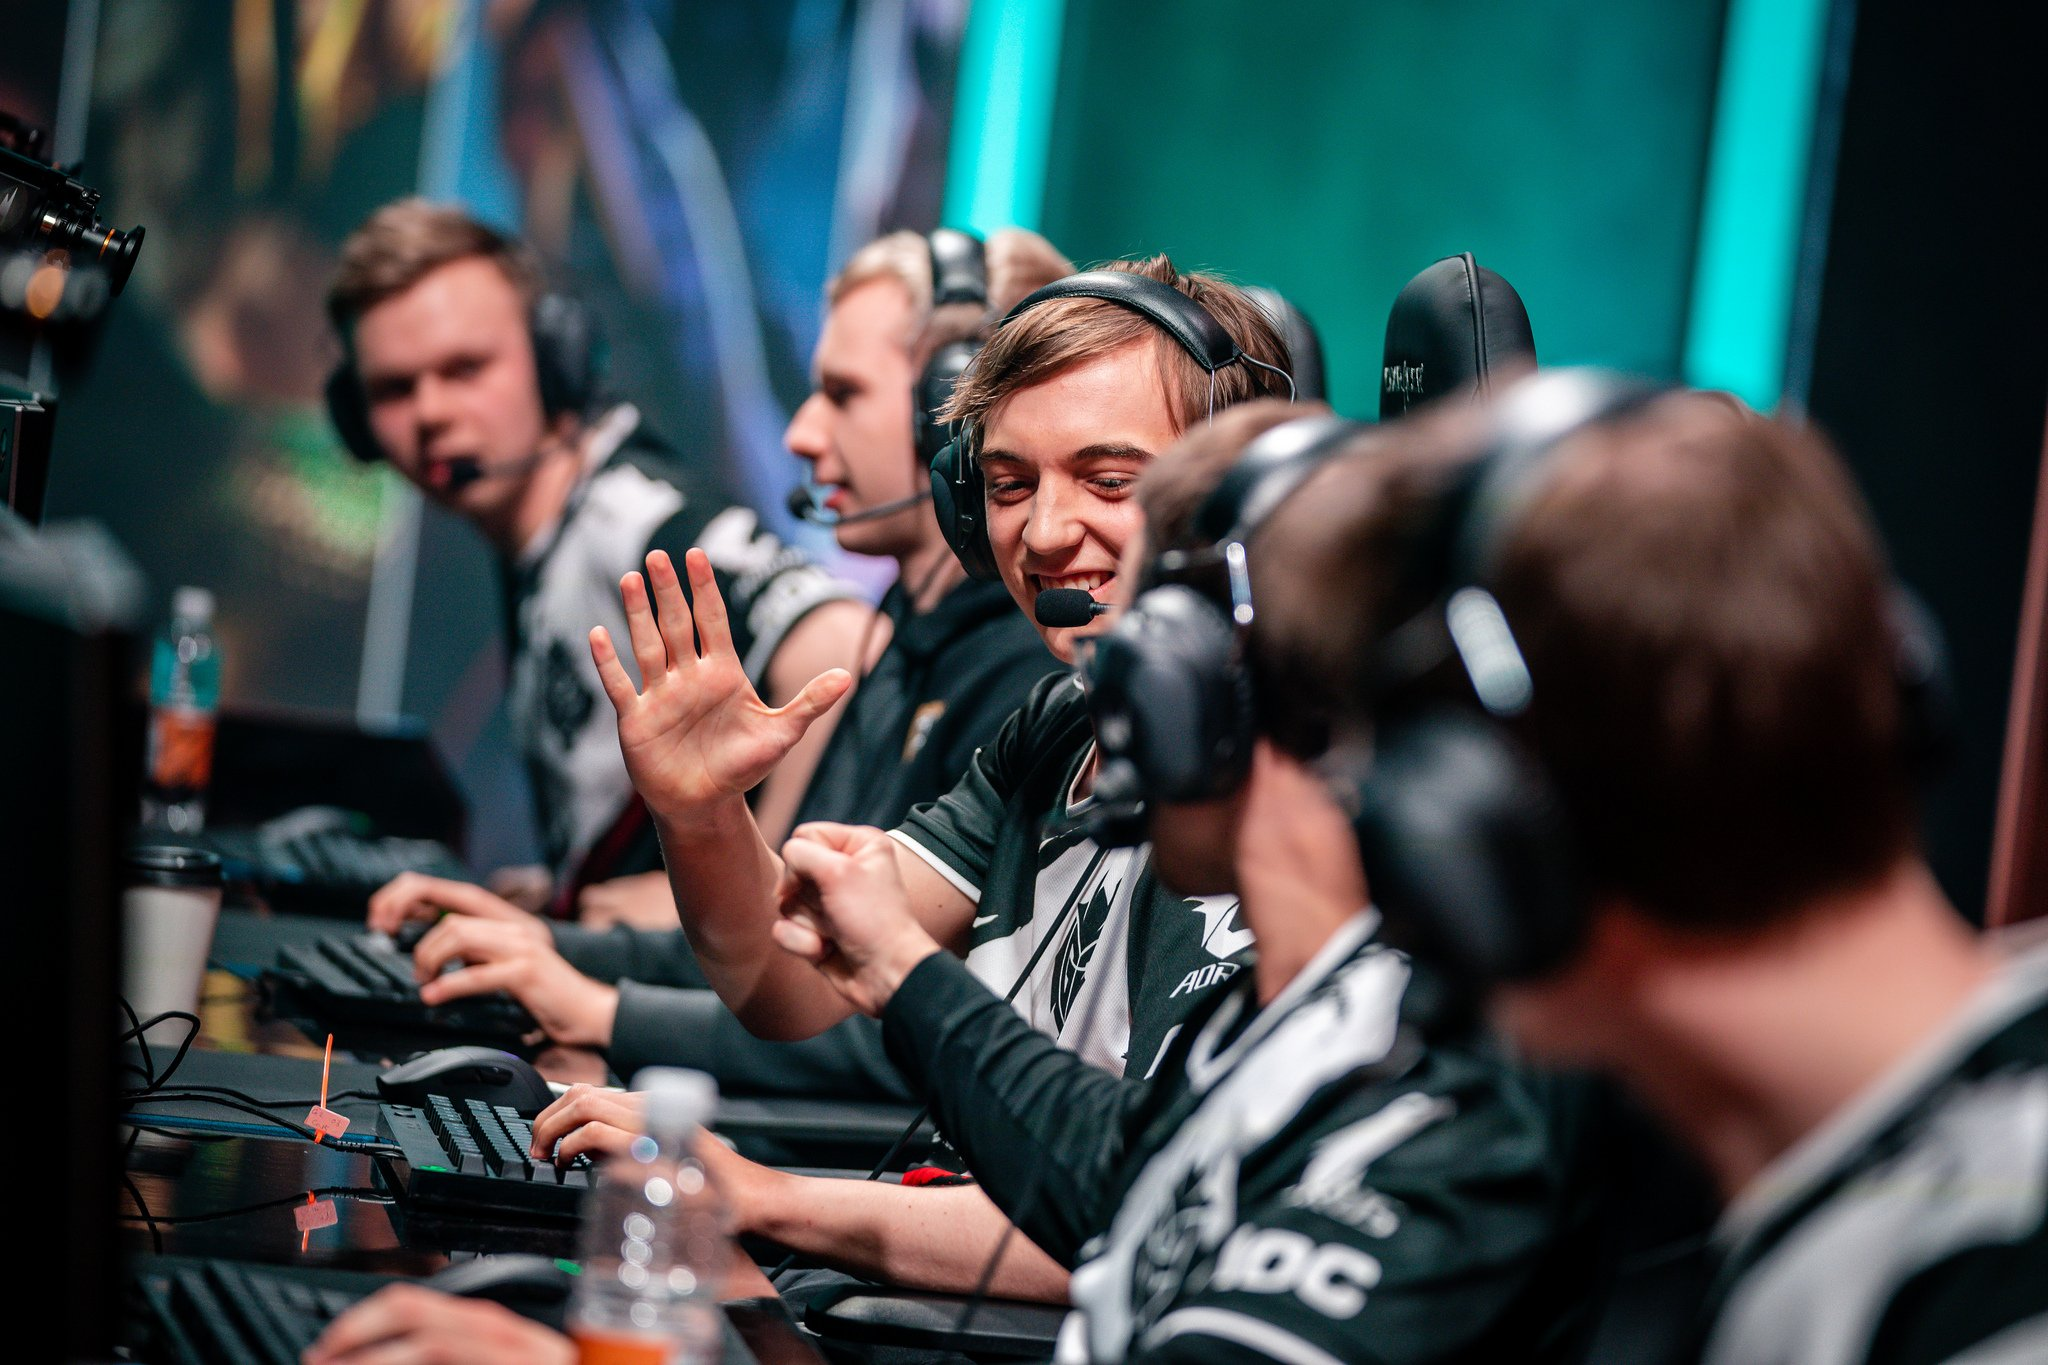 G2-and-Misfits-prevail-in-first-week-of-League-of-Legends-LEC-2019